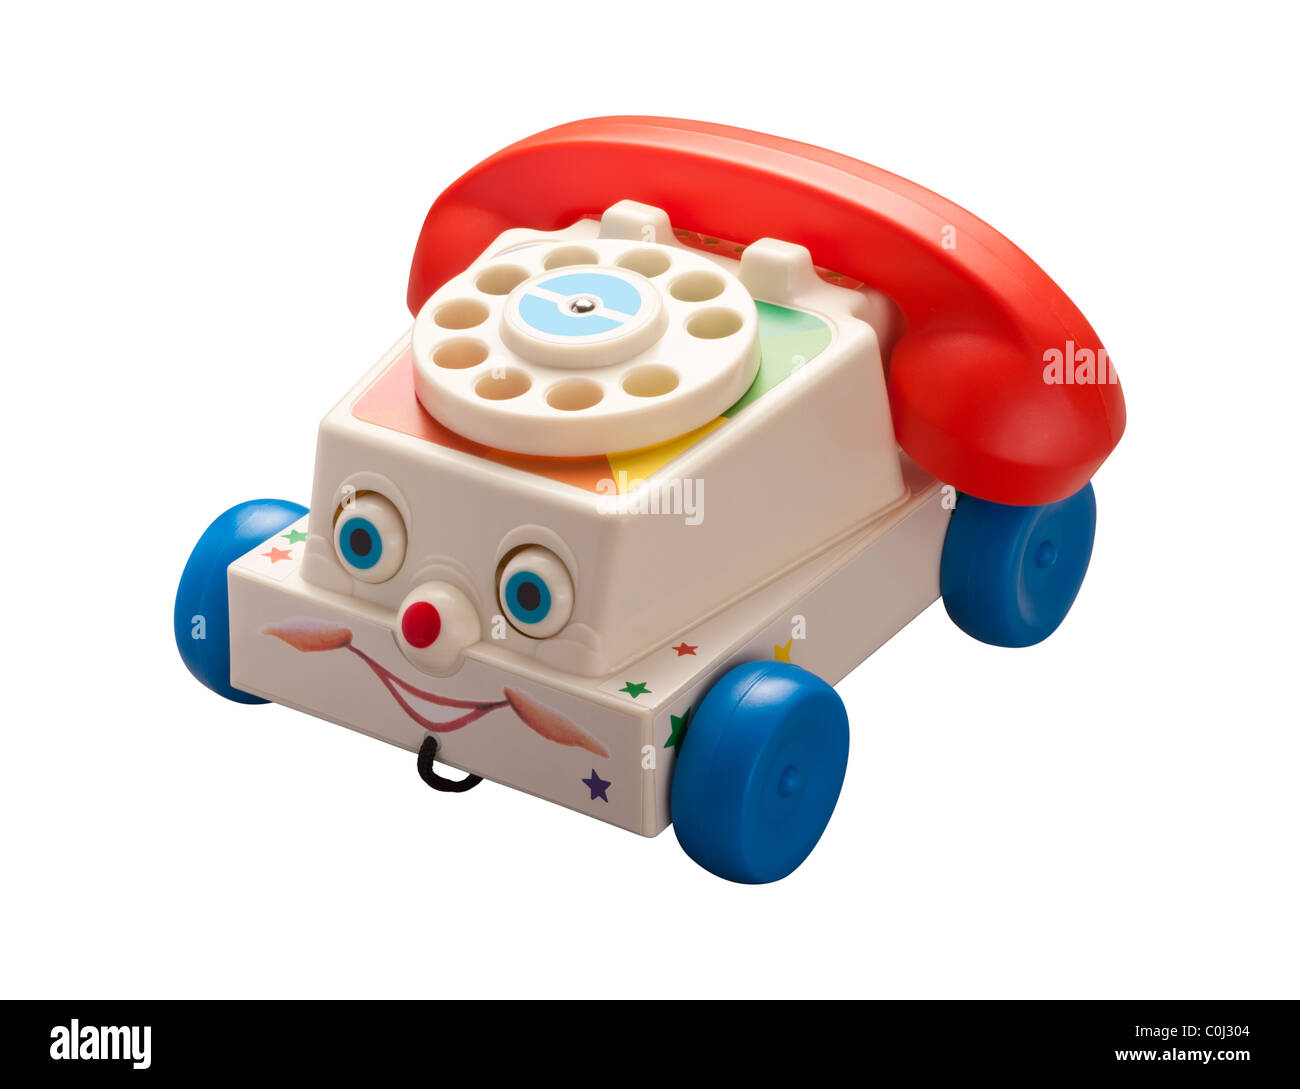 Antique Toy Phone Isolated on a white background. - Stock Image